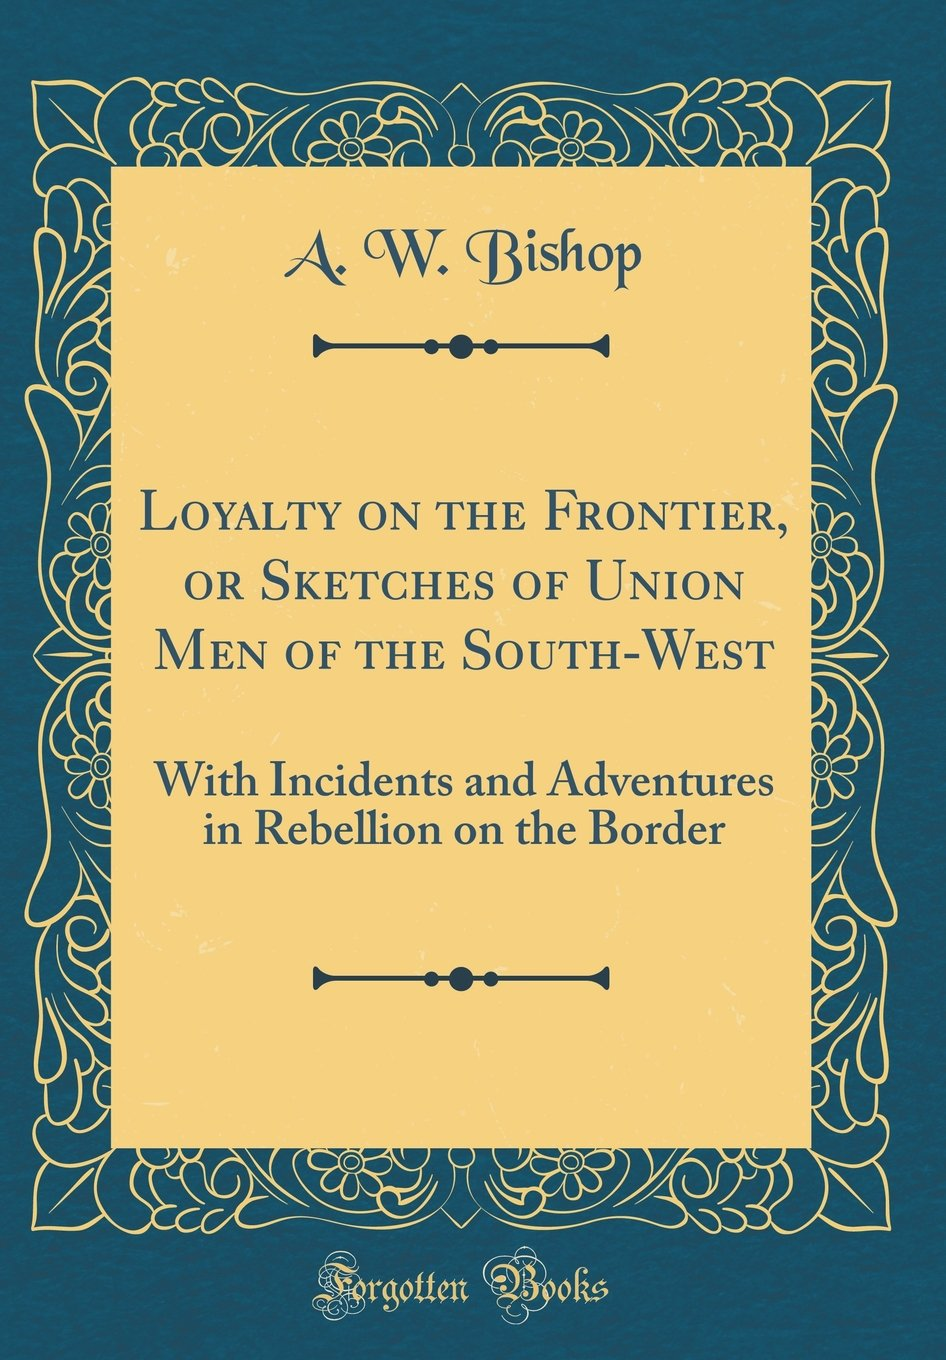 Loyalty on the Frontier, or Sketches of Union Men of the South-West: With Incidents and Adventures in Rebellion on the Border (Classic Reprint) PDF